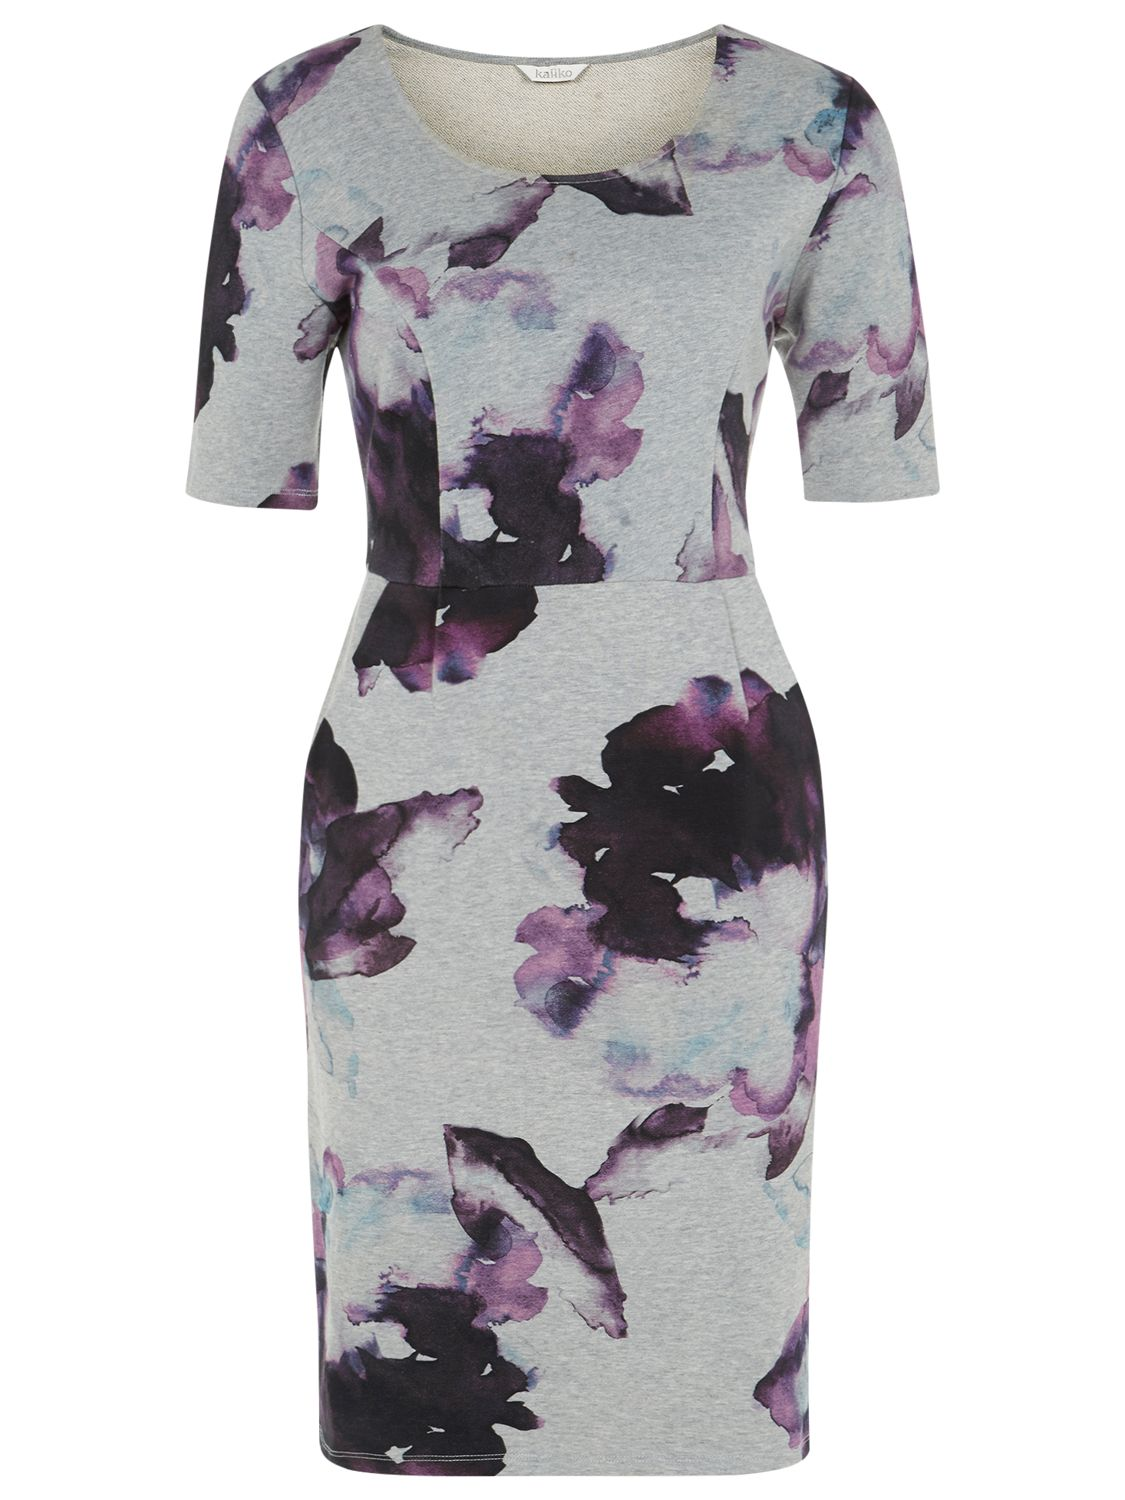 kaliko floral print dress grey, kaliko, floral, print, dress, grey, 14|8, clearance, womenswear offers, womens dresses offers, special offers, 20% off selected kaliko, women, womens dresses, inactive womenswear, aw14 trends, floral bloom, edition magazine, workwear, 1619505